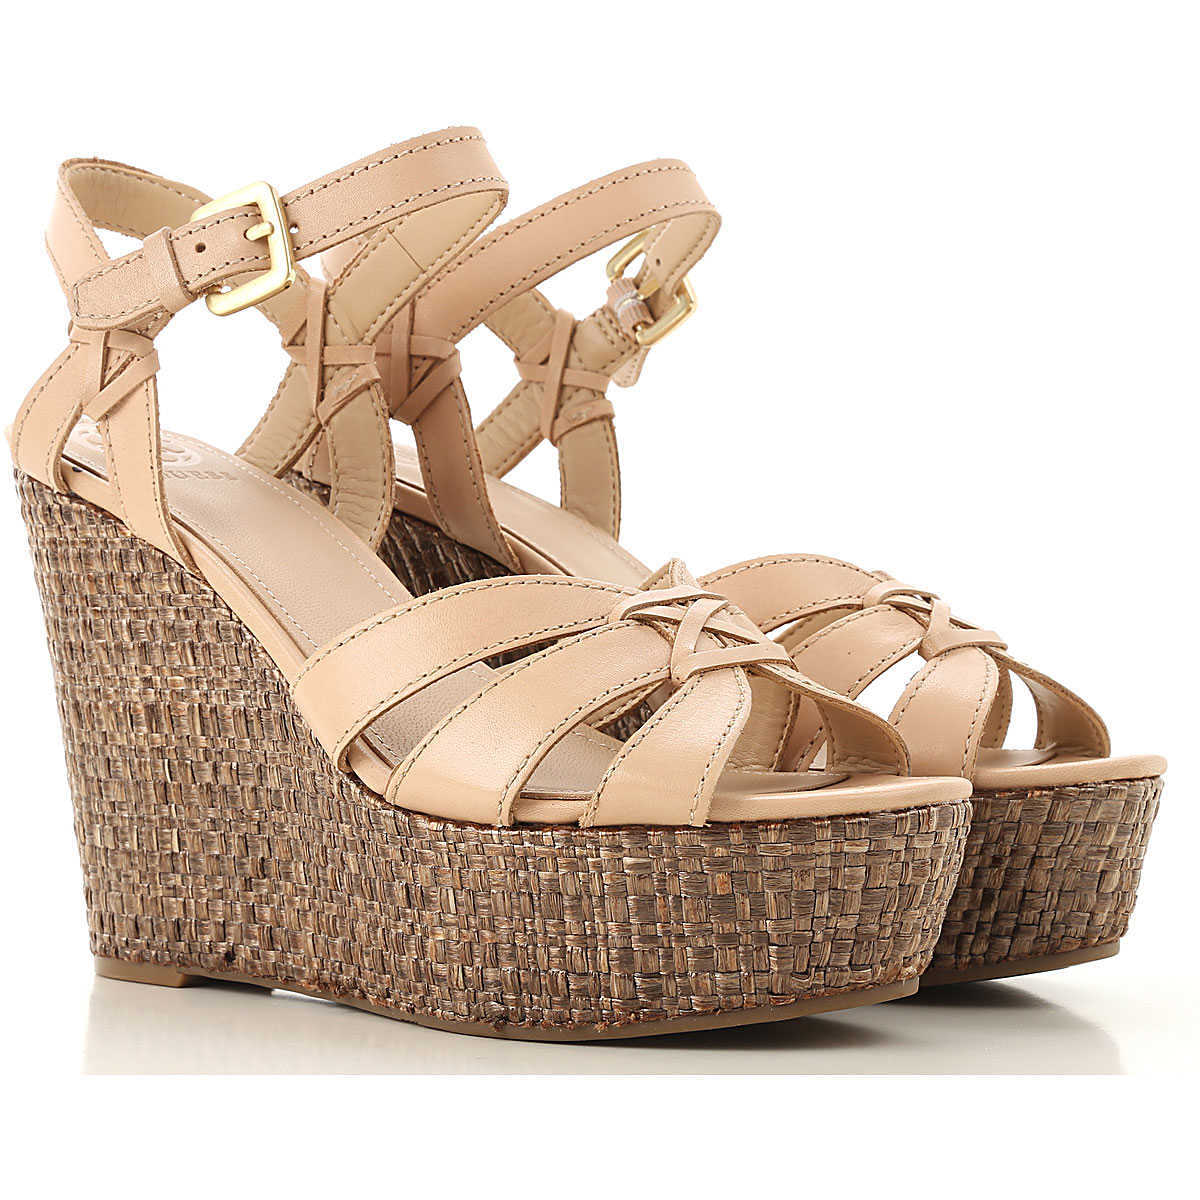 Guess Wedges for Women On Sale Beige DK - GOOFASH - Womens HOUSE SHOES